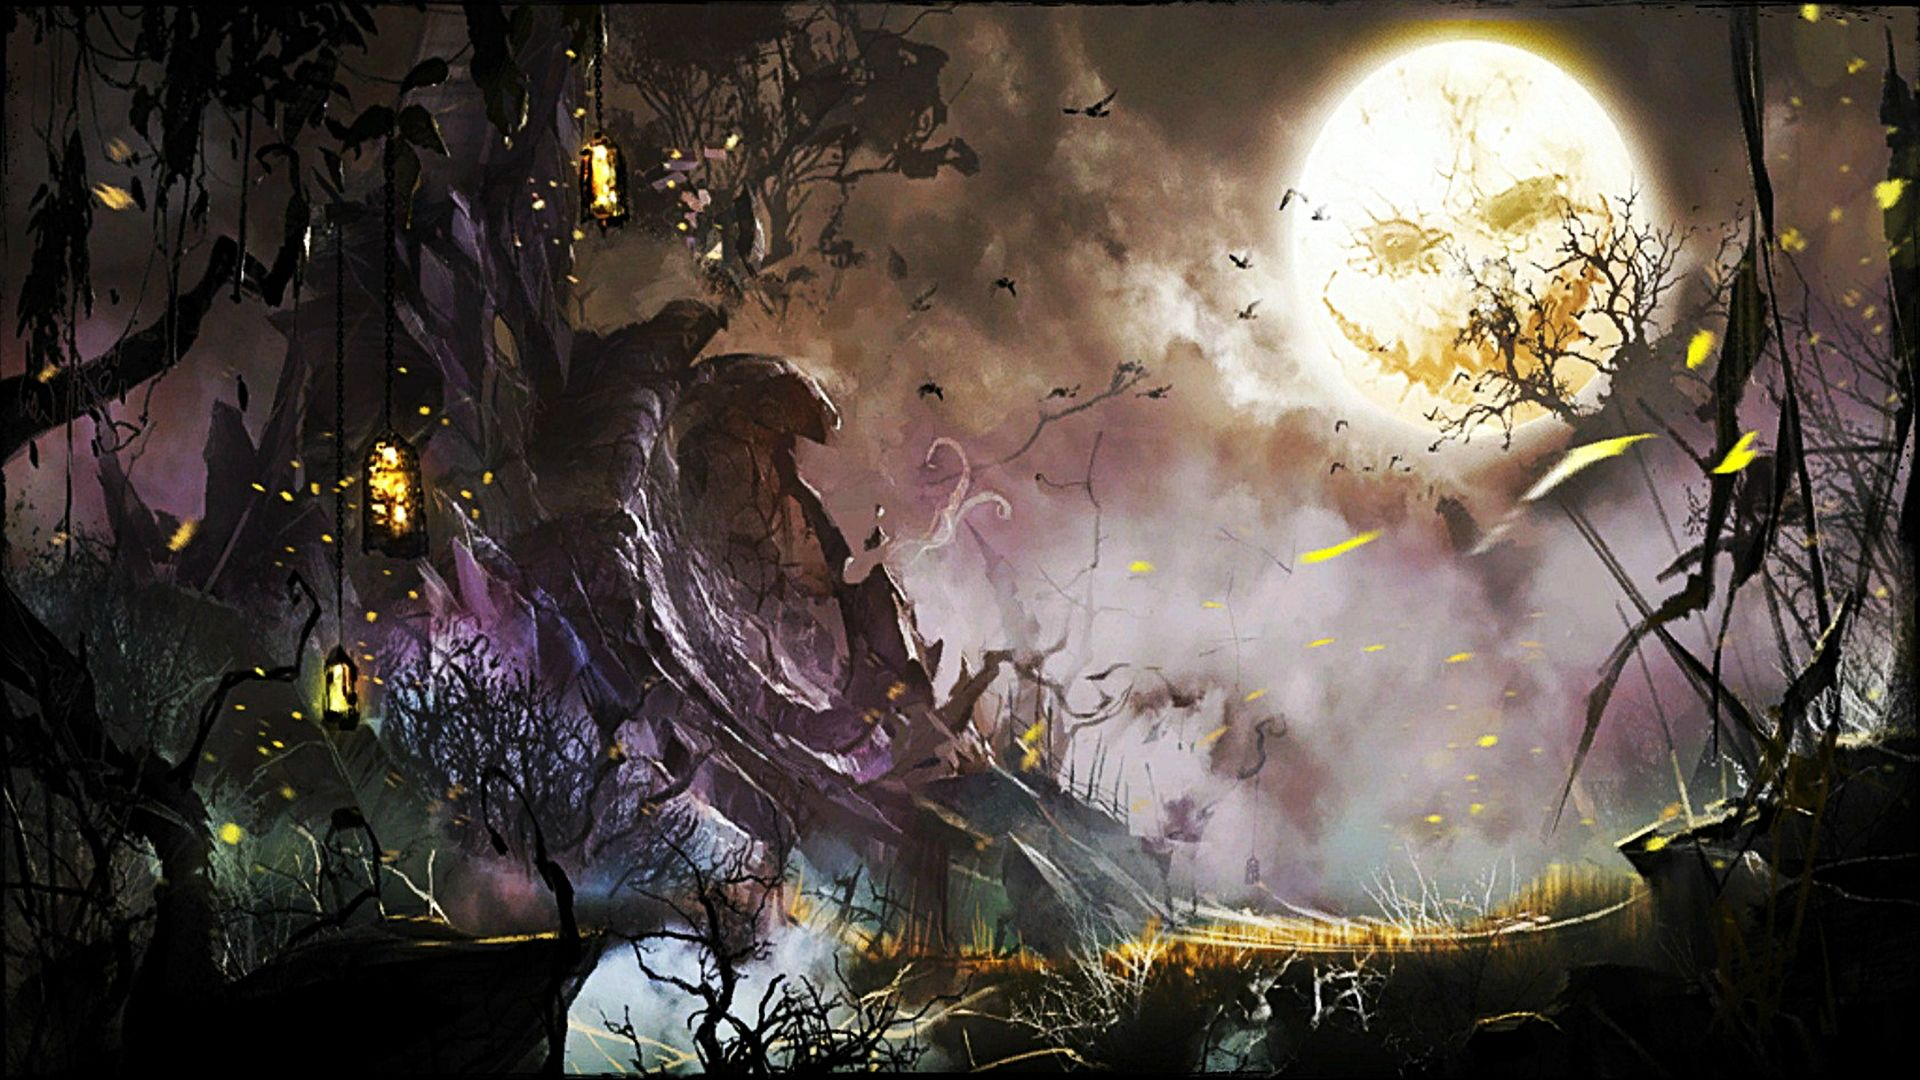 mad king 39 s labyrinth computer wallpapers desktop